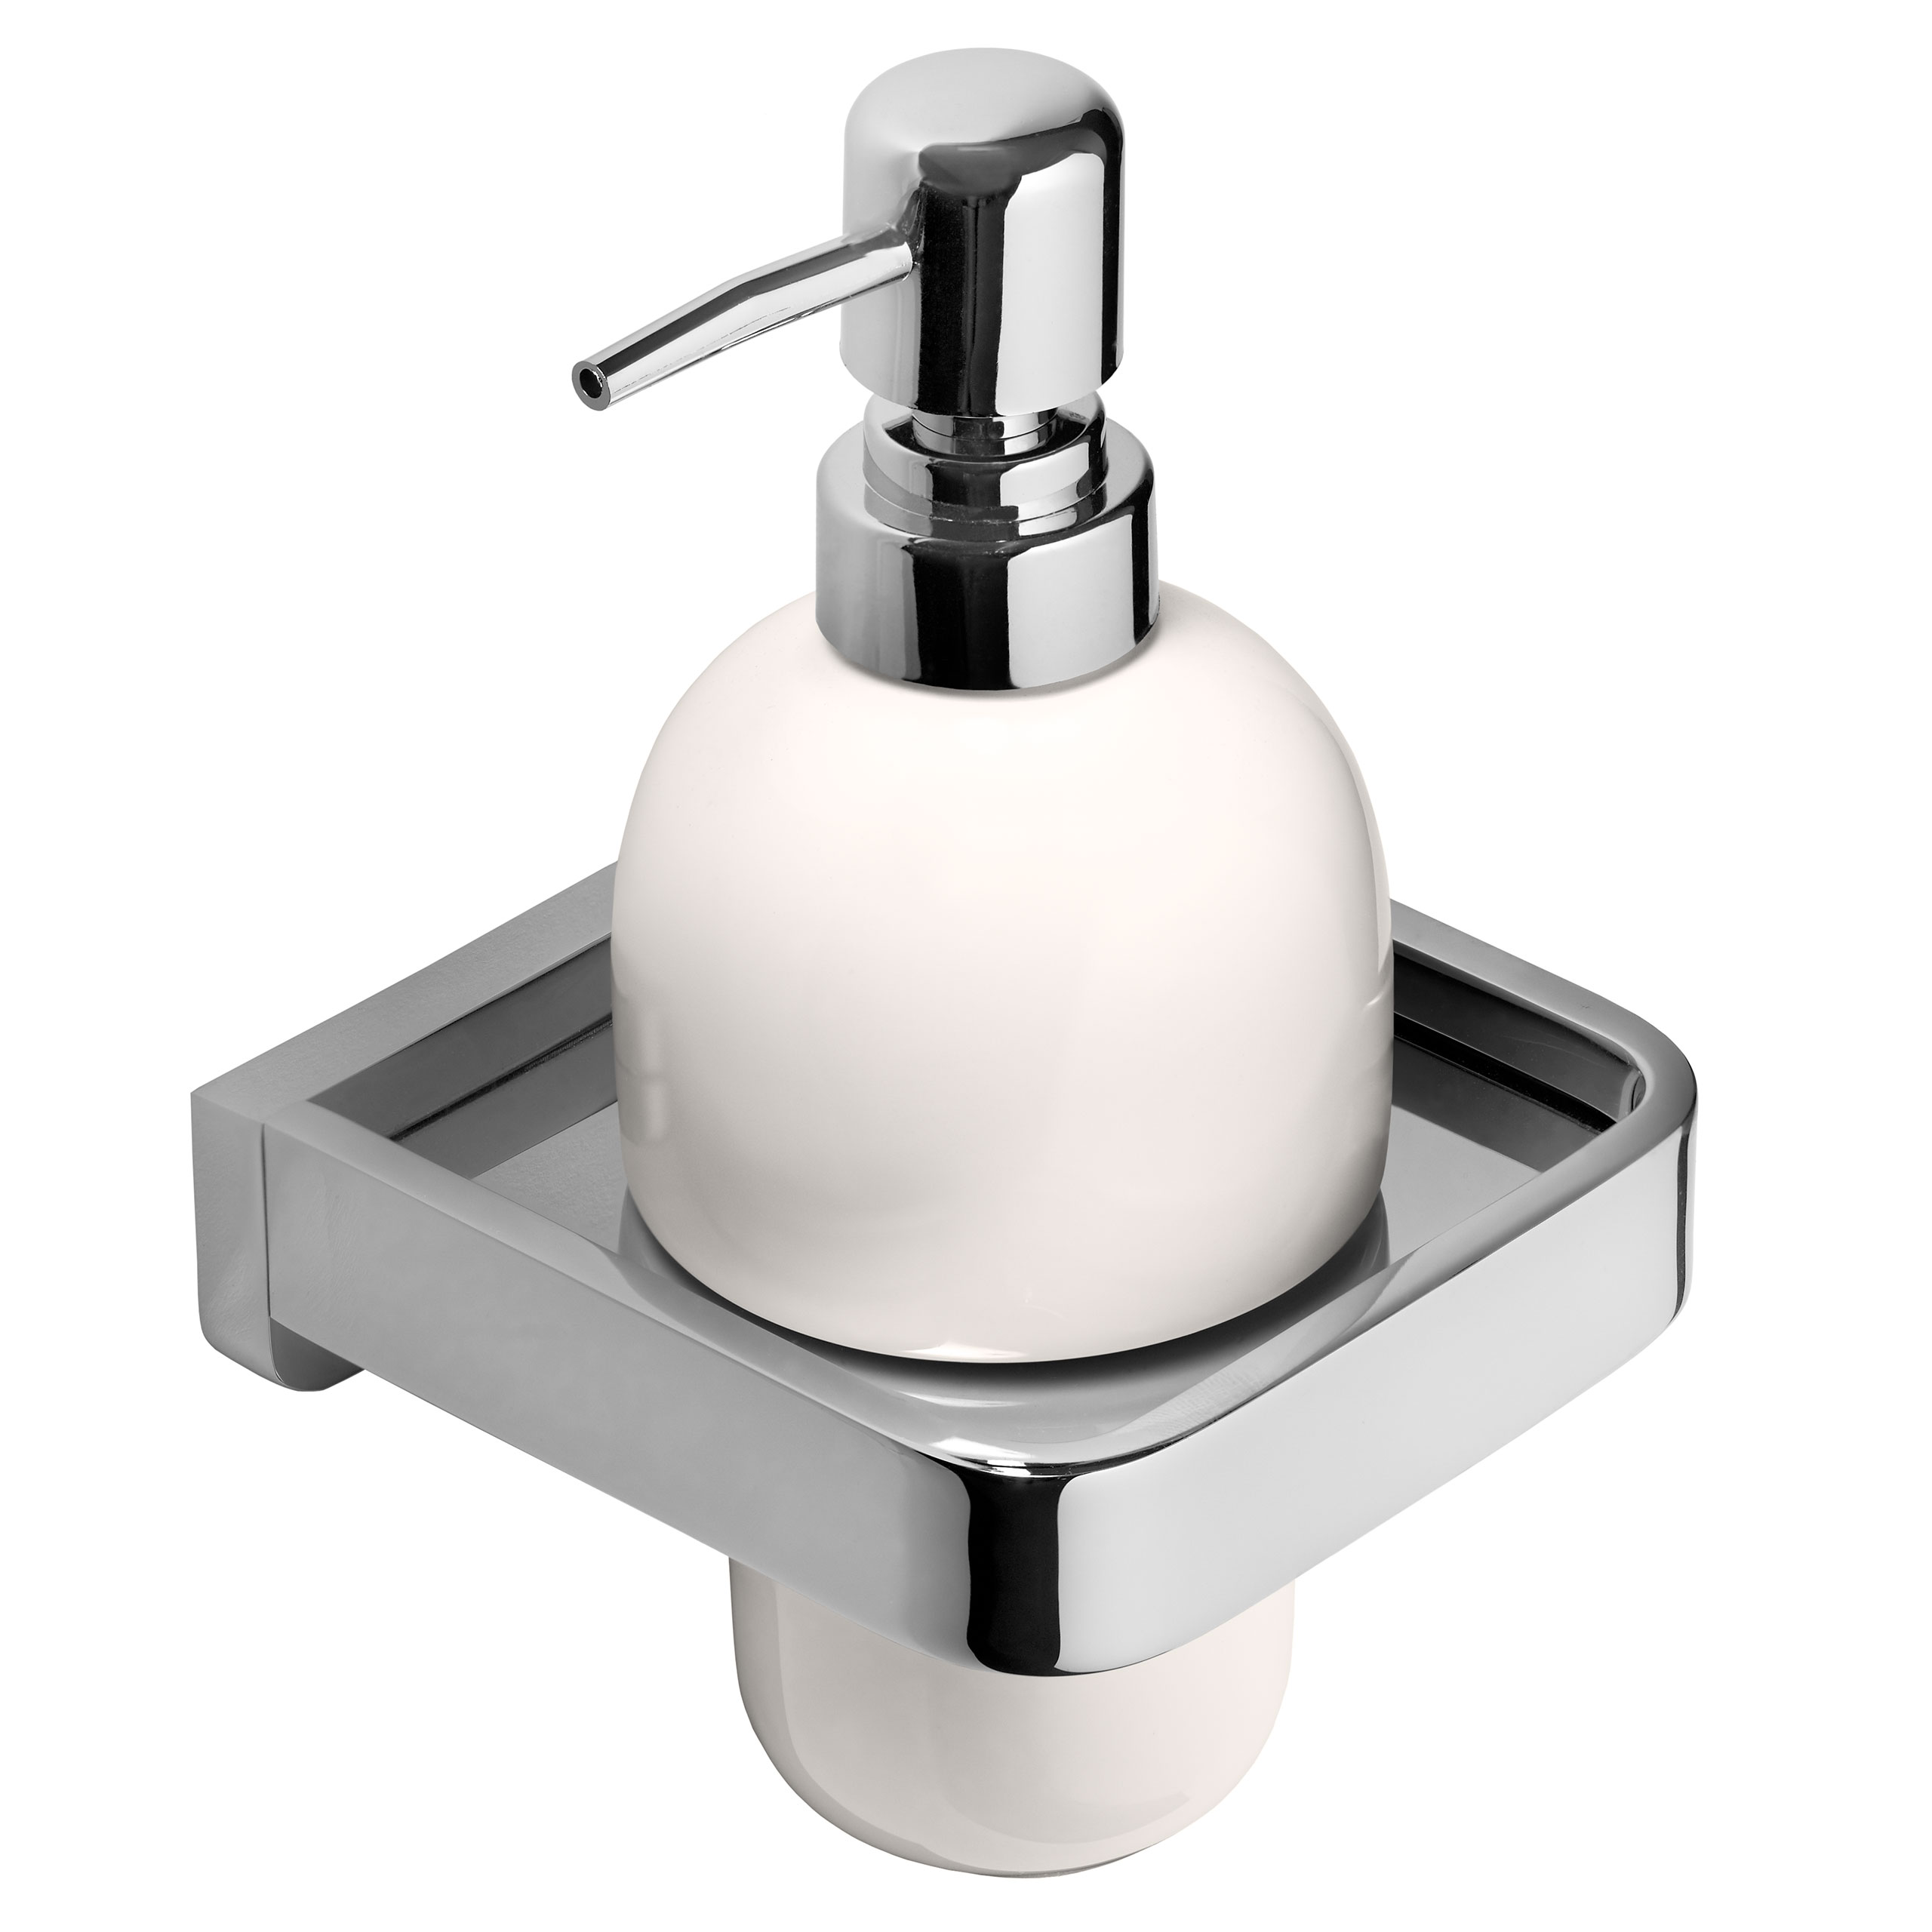 Bathroom accessories fresh range wall mounted chrome Wholesale bathroom fixtures